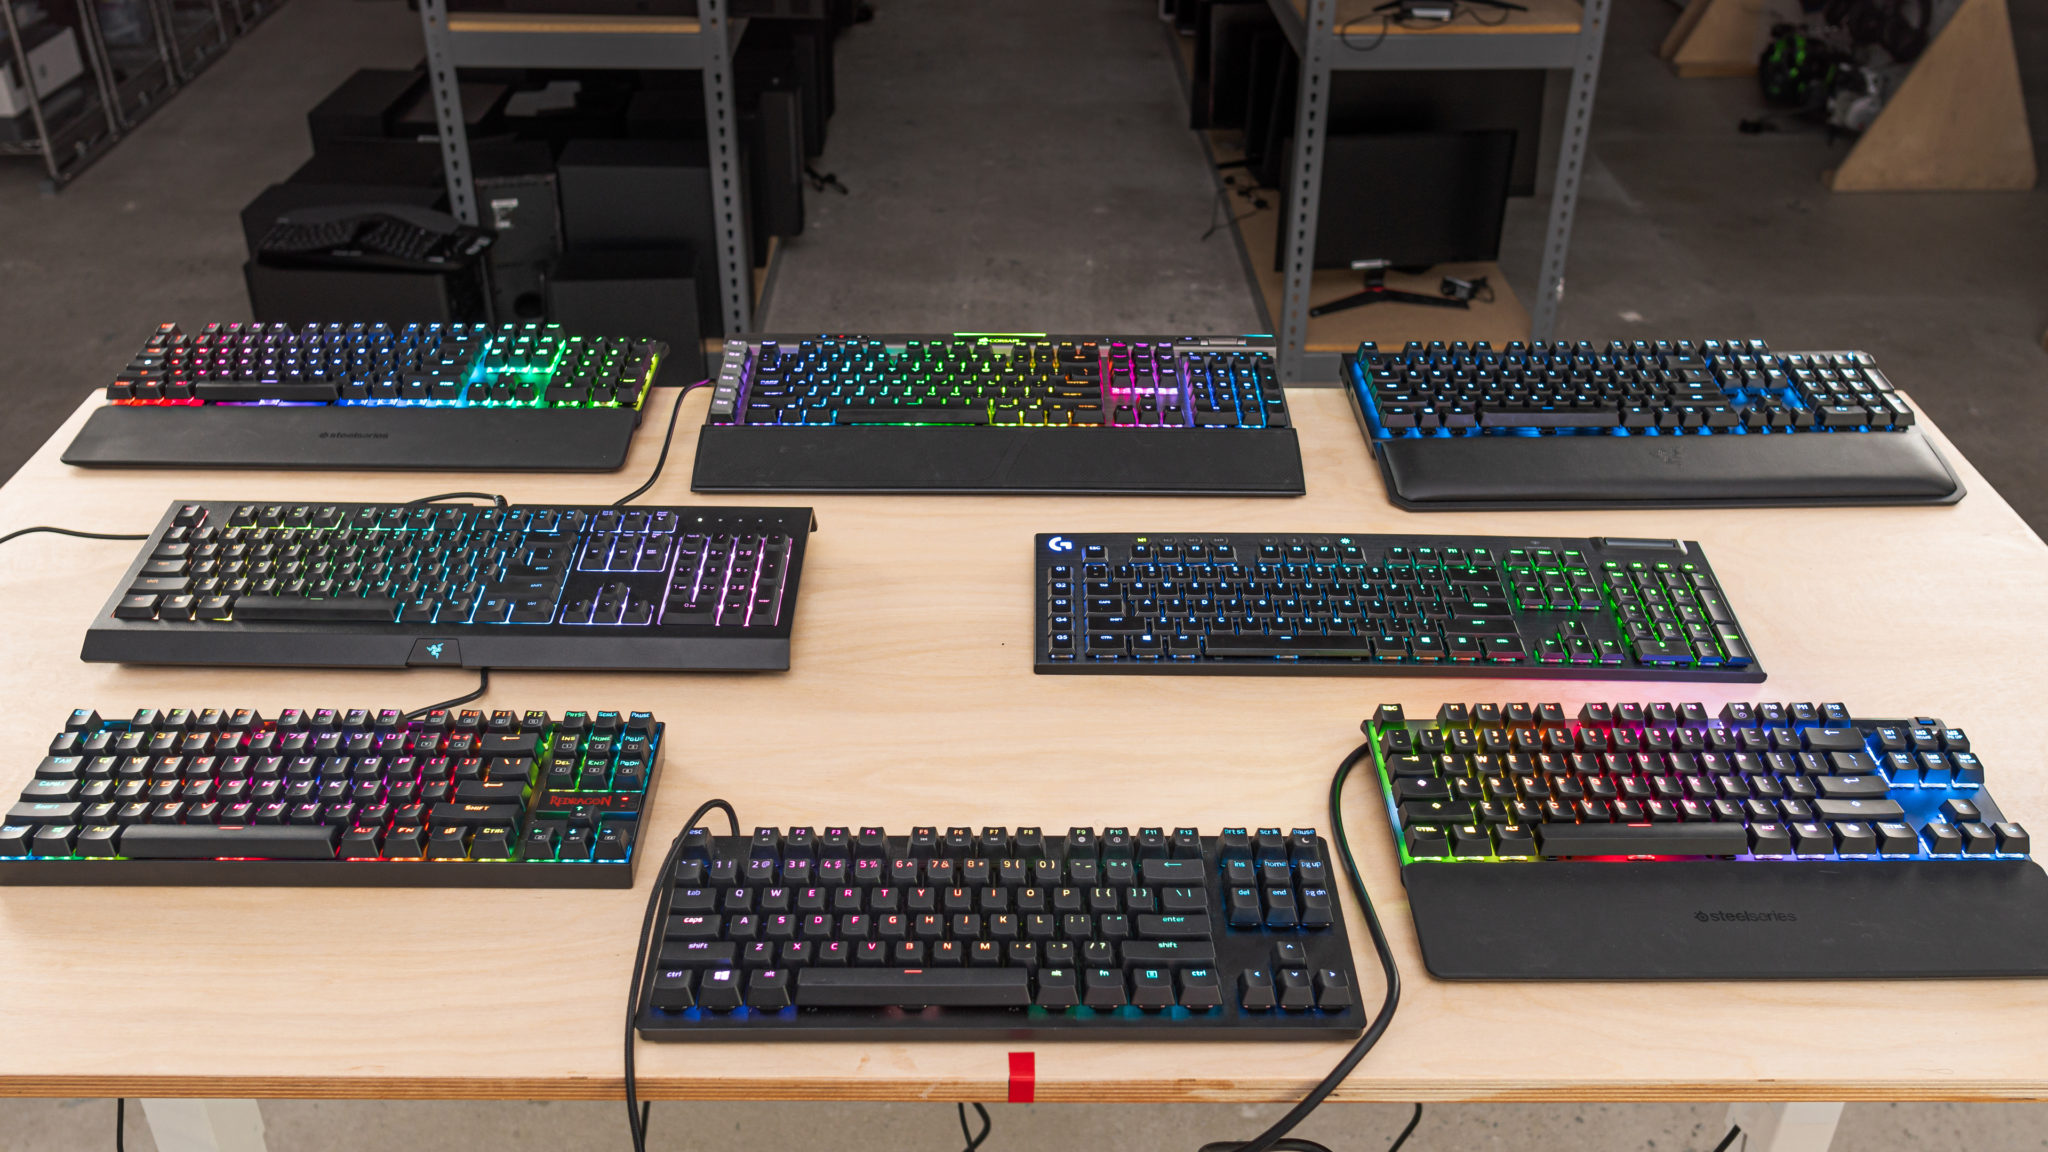 gaming keyboards on a table